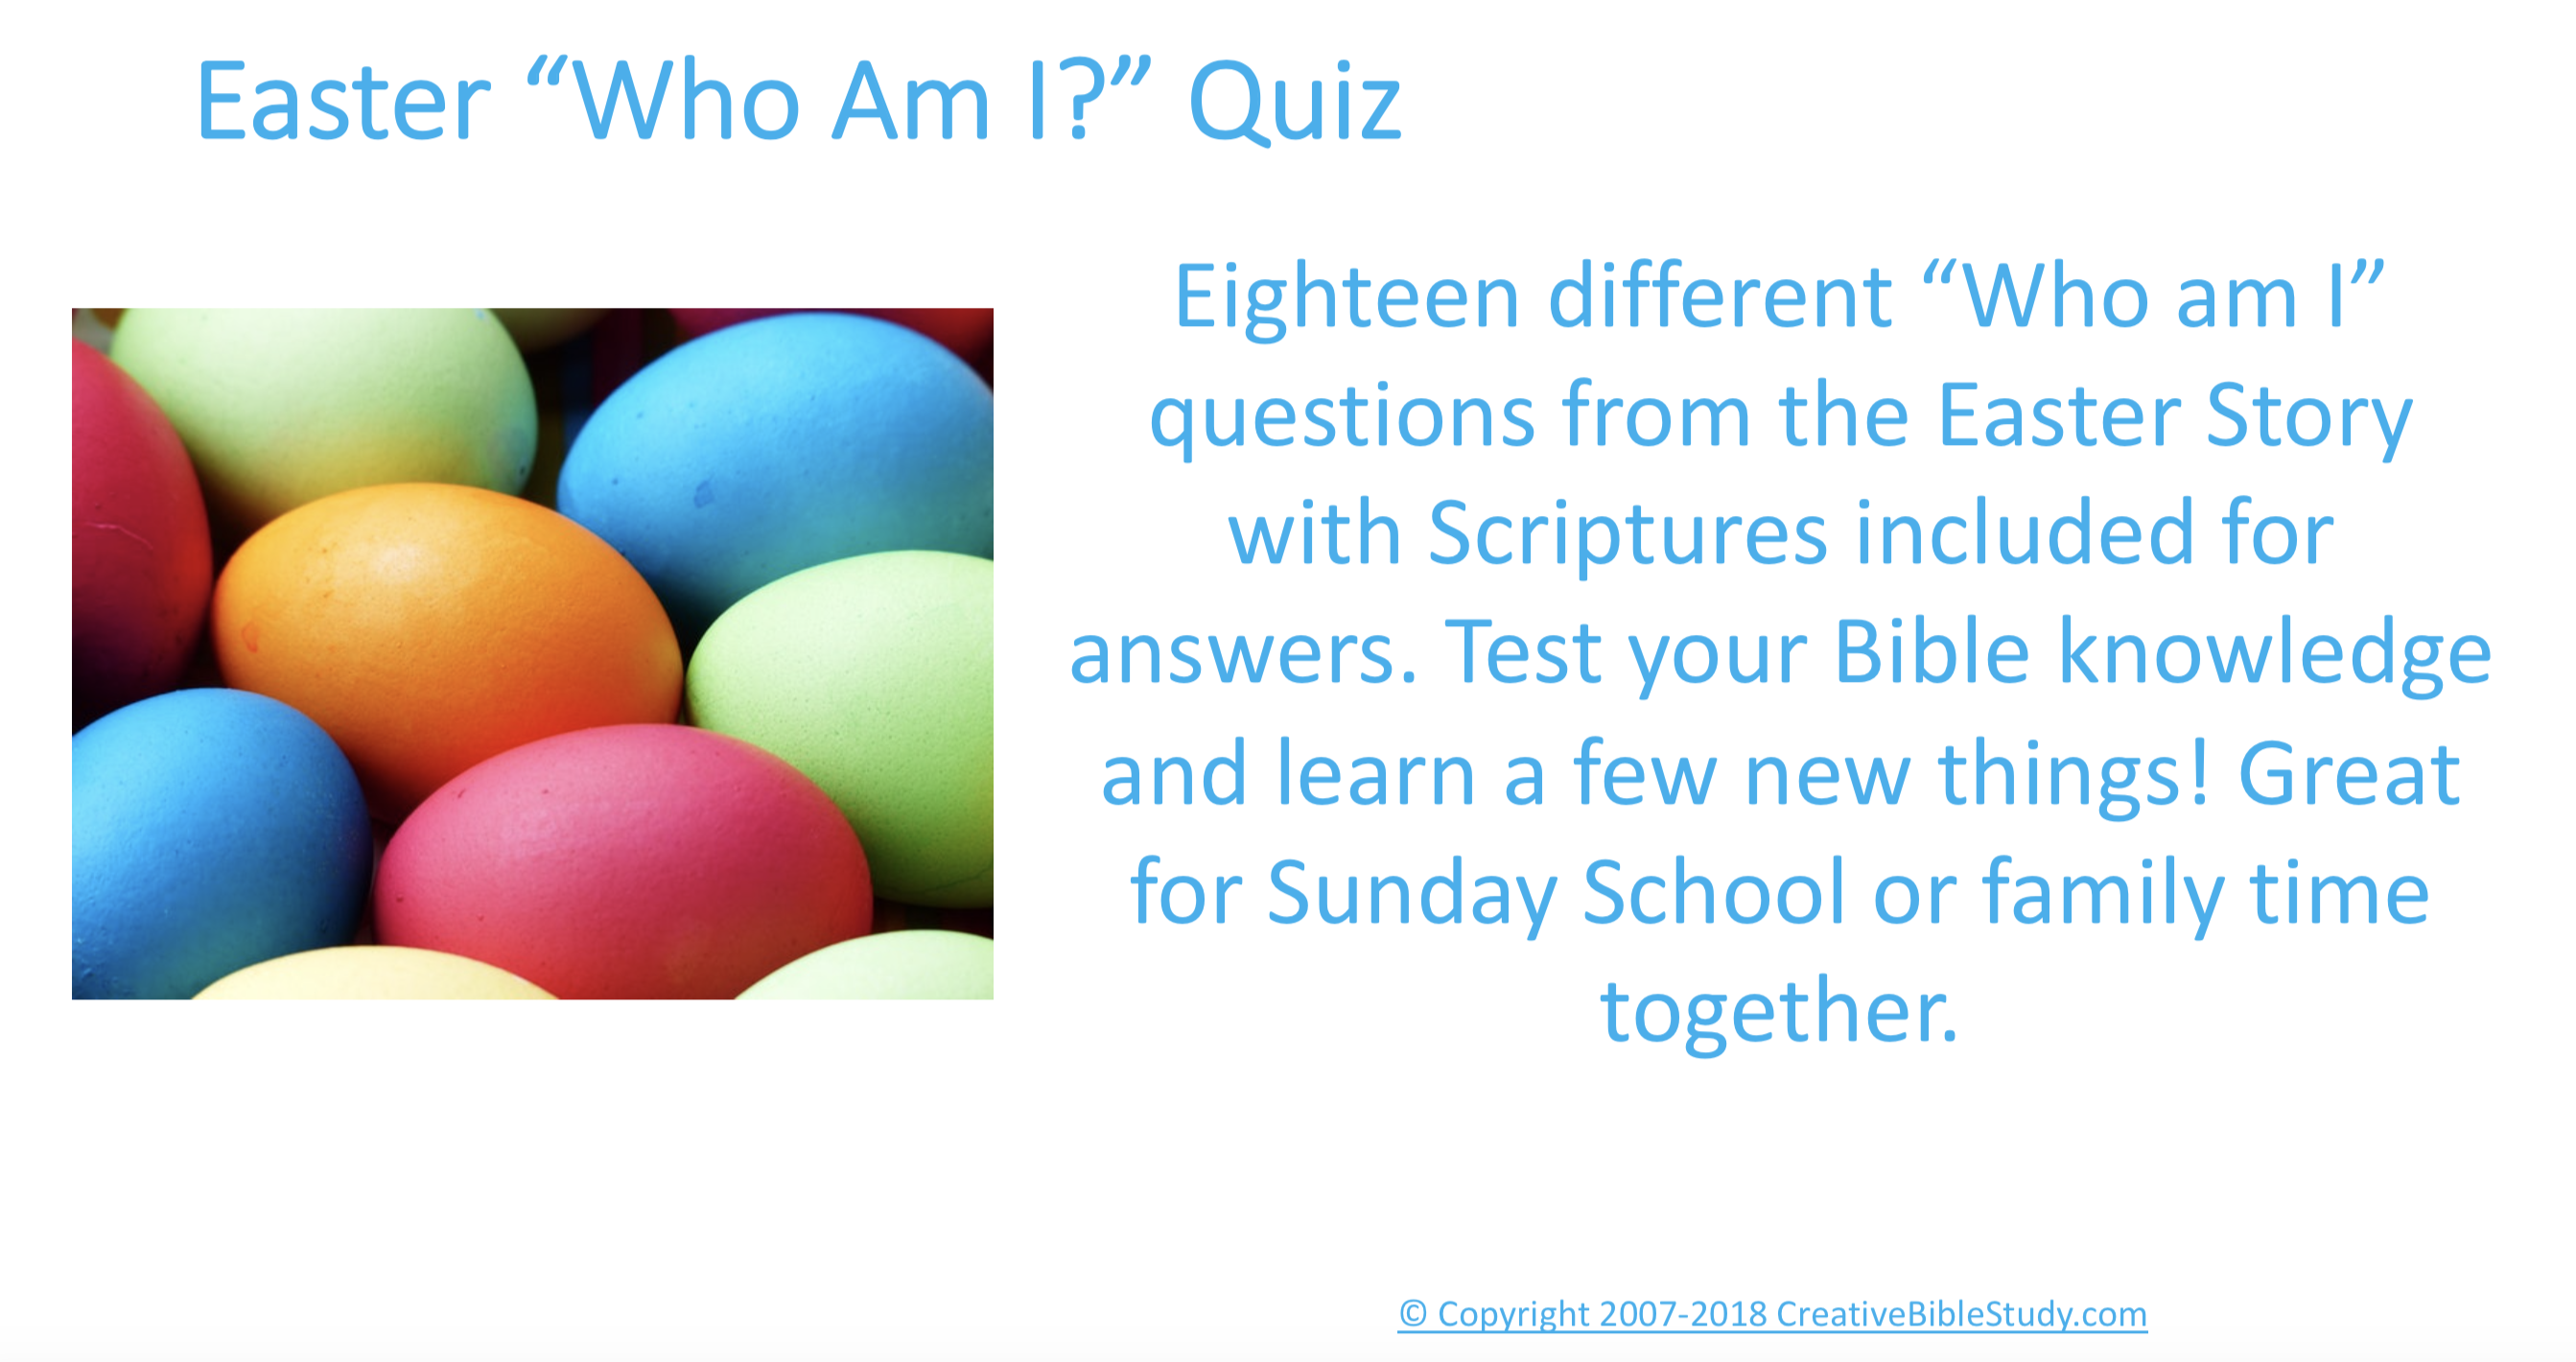 An Easter Quiz Game - Kids, Youth & Adults